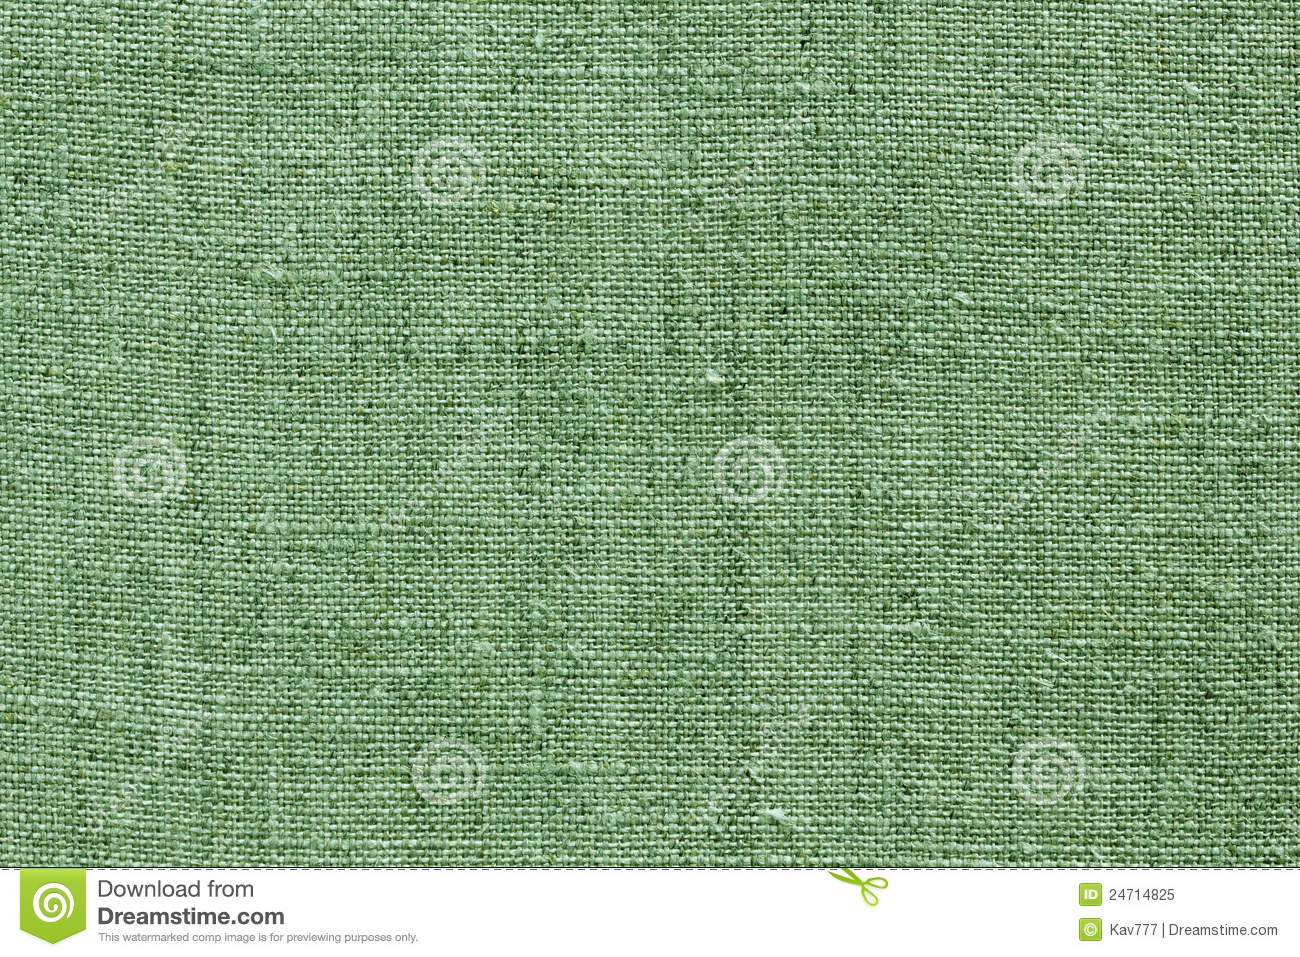 Linen Background Texture Free Stock Photos Download 9 467: Green Linen Texture For The Background Stock Image